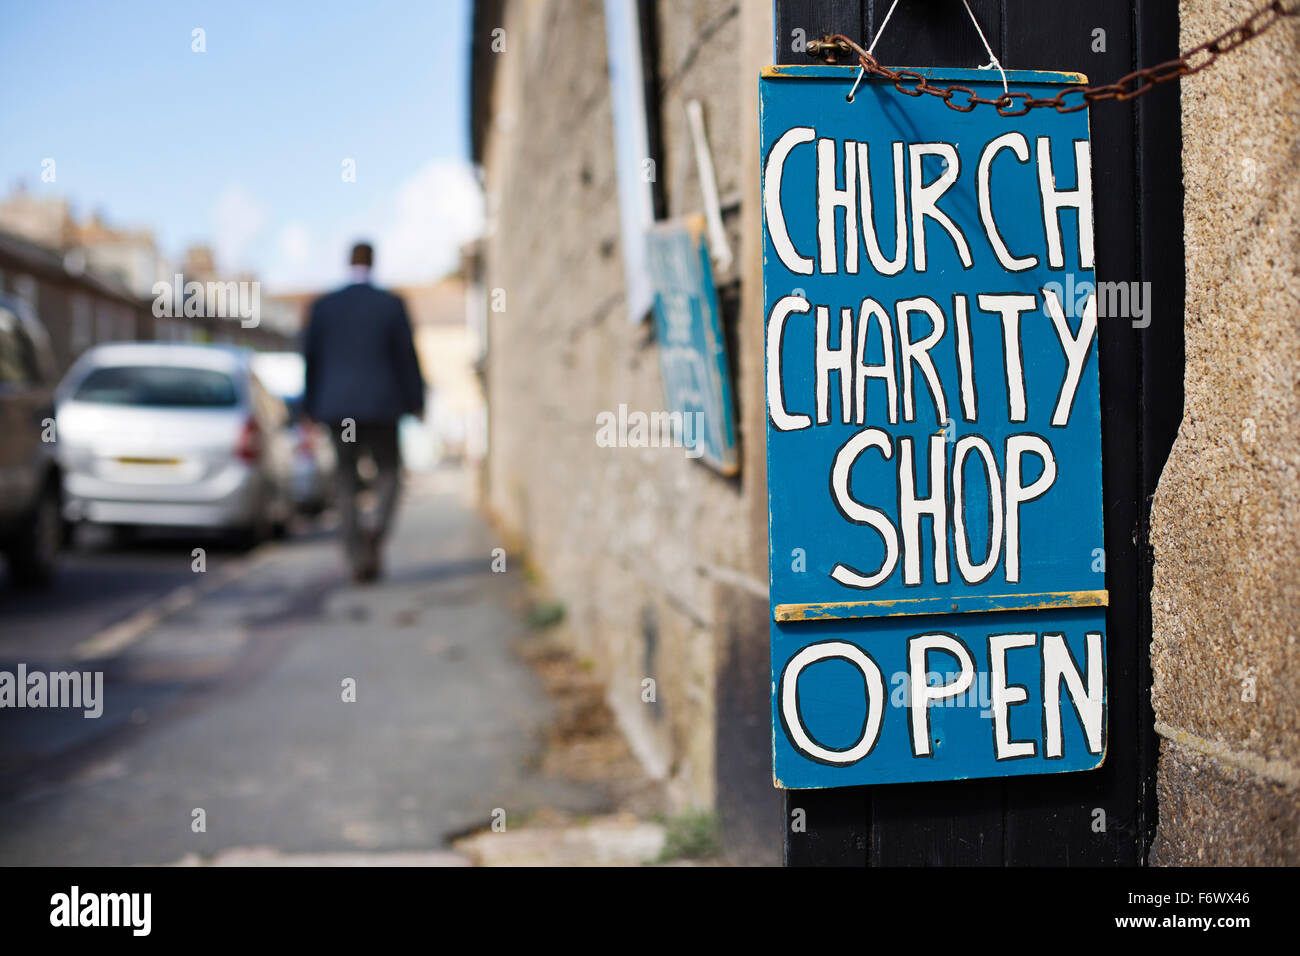 Un magasin de charité de l'Eglise dans les îles Scilly,Cornwall Photo Stock